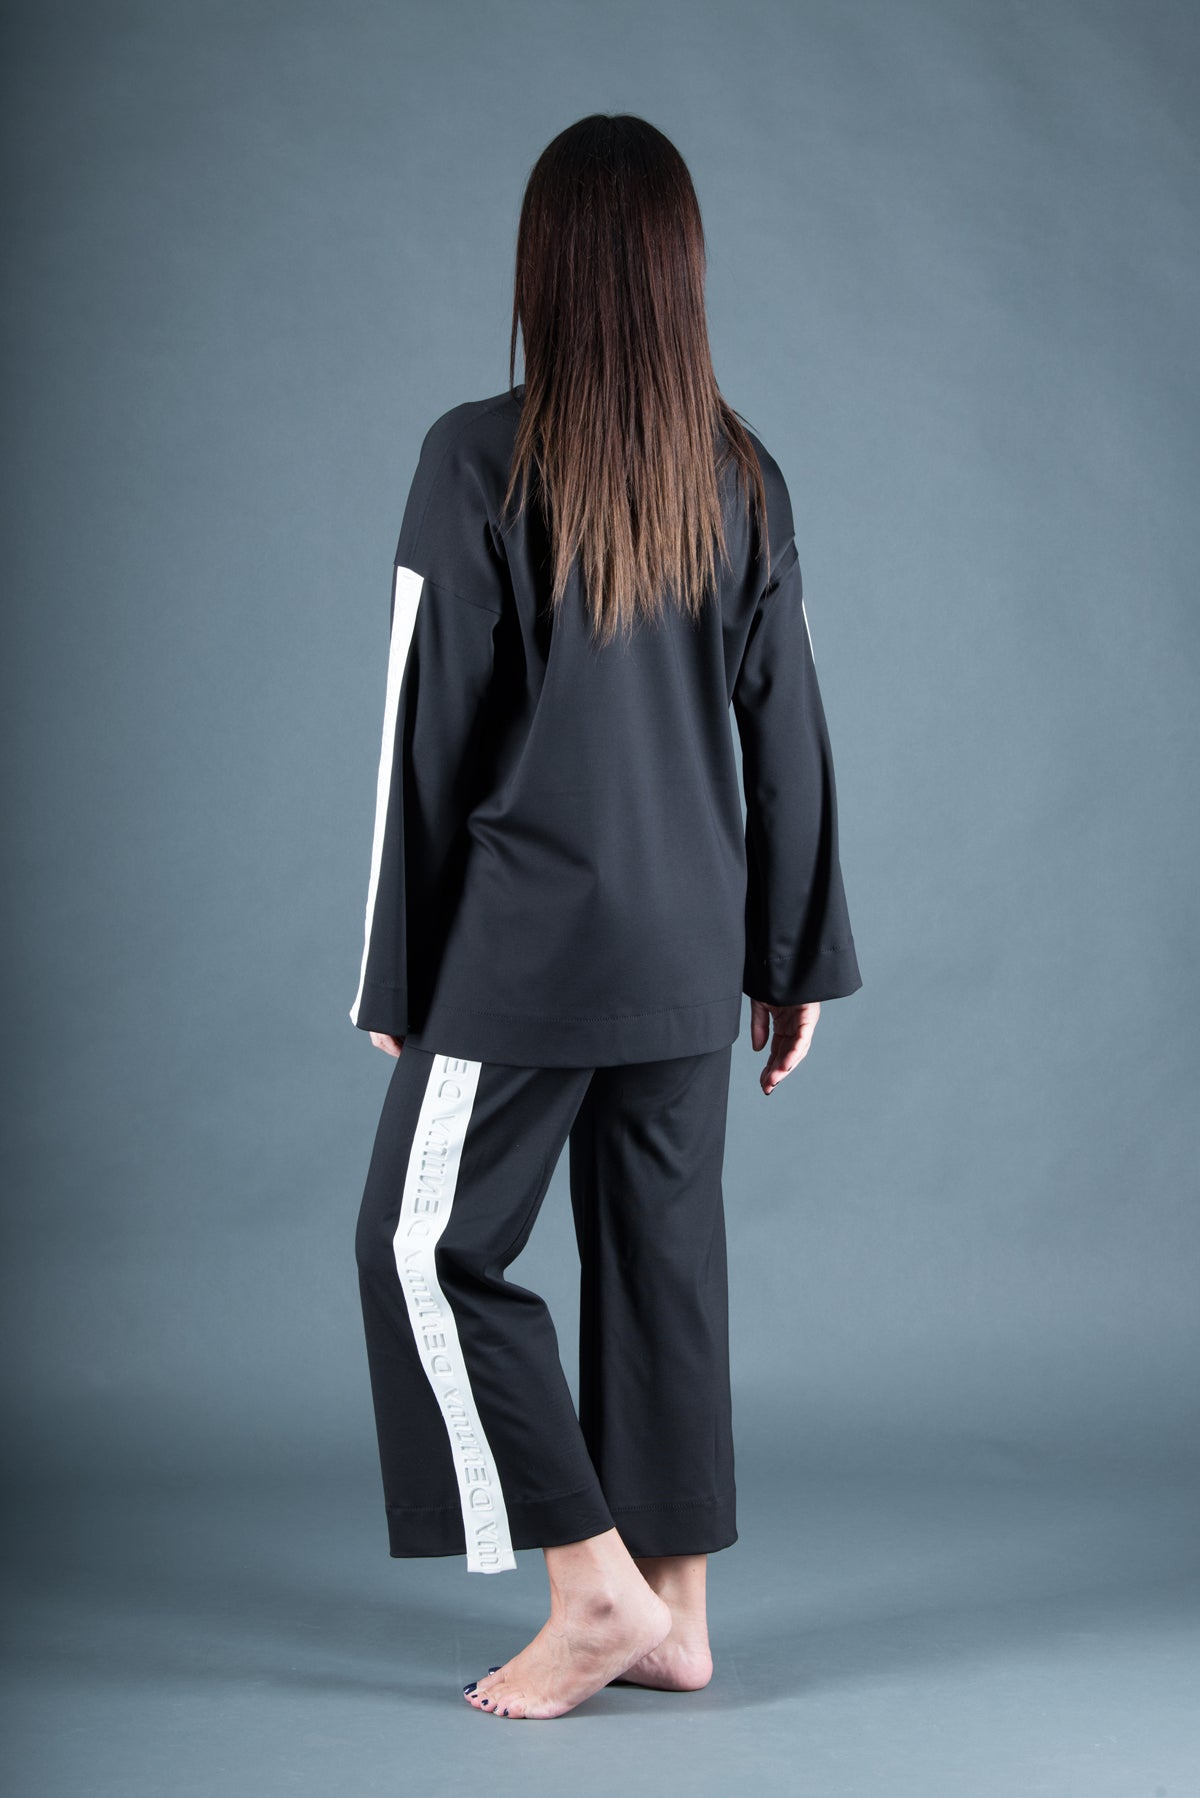 Two pieces set, Black Tracksuit with Stripe, Elegant & Sport Sets